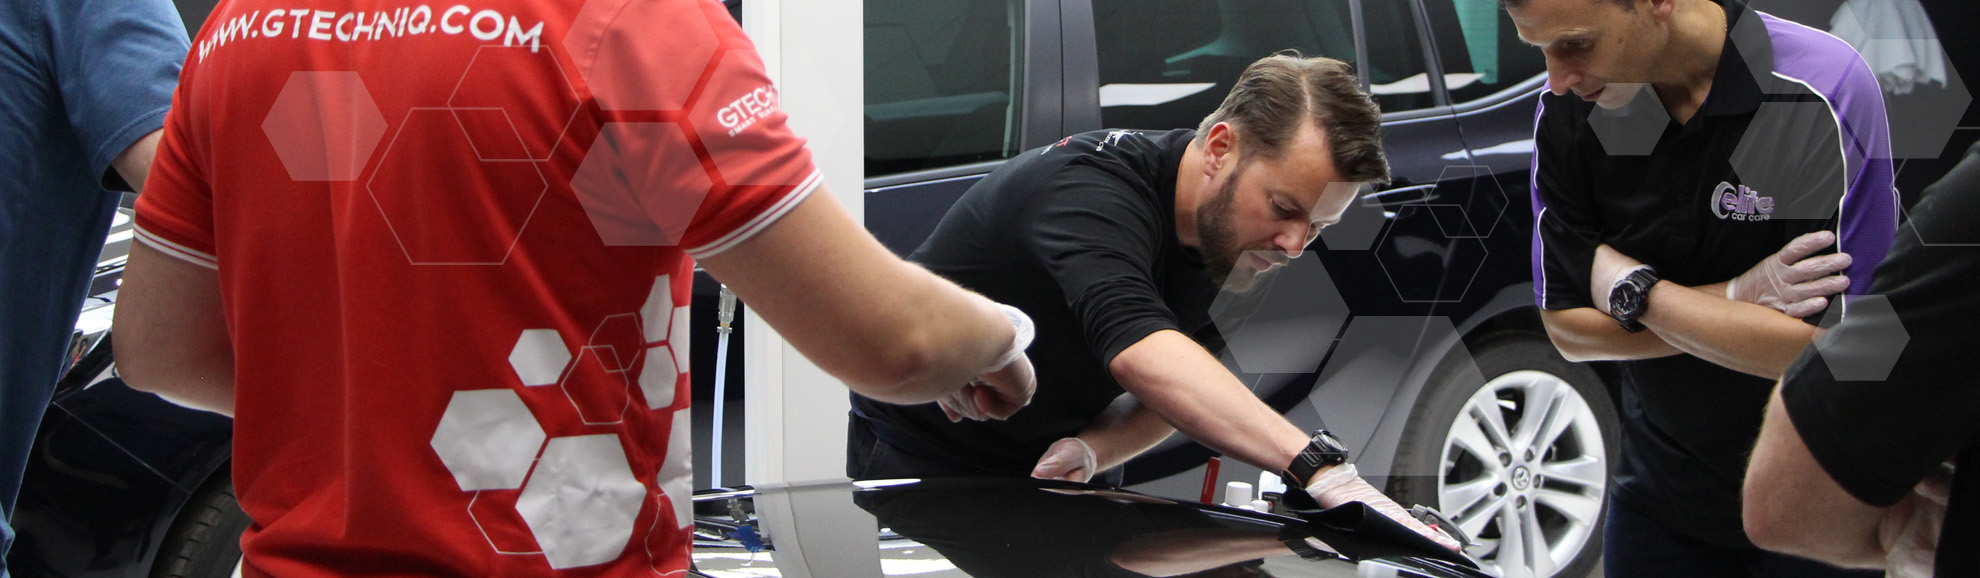 Gtechniq Accredited Detailers